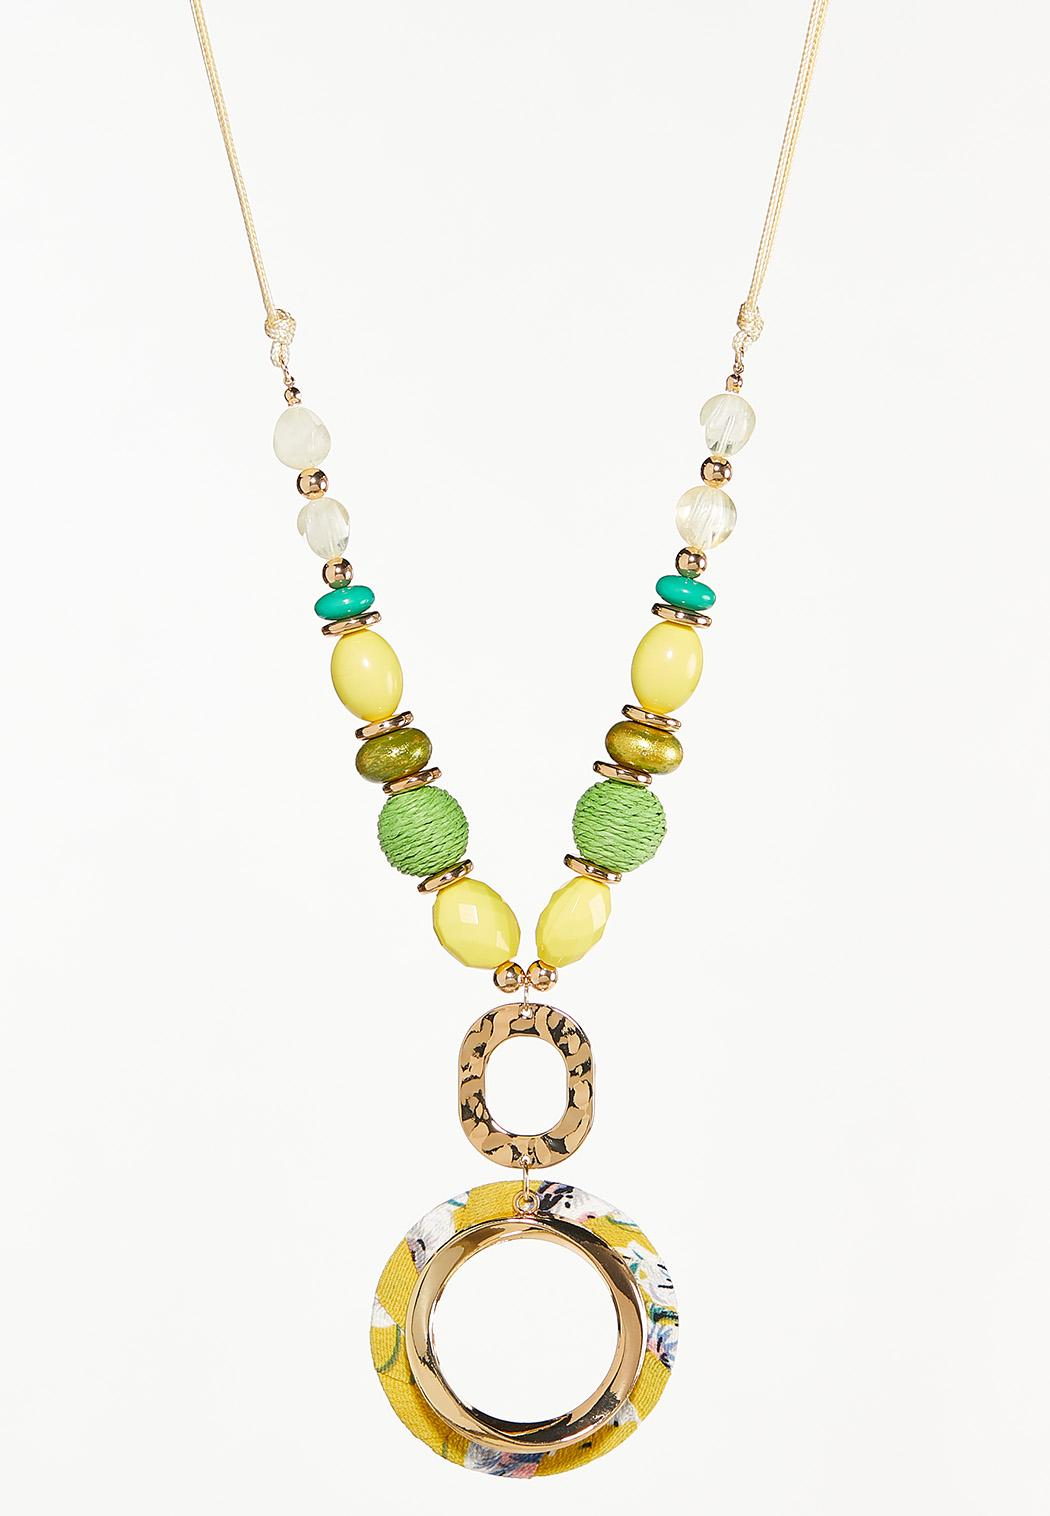 Fabric Wrapped Pendant Bead Necklace